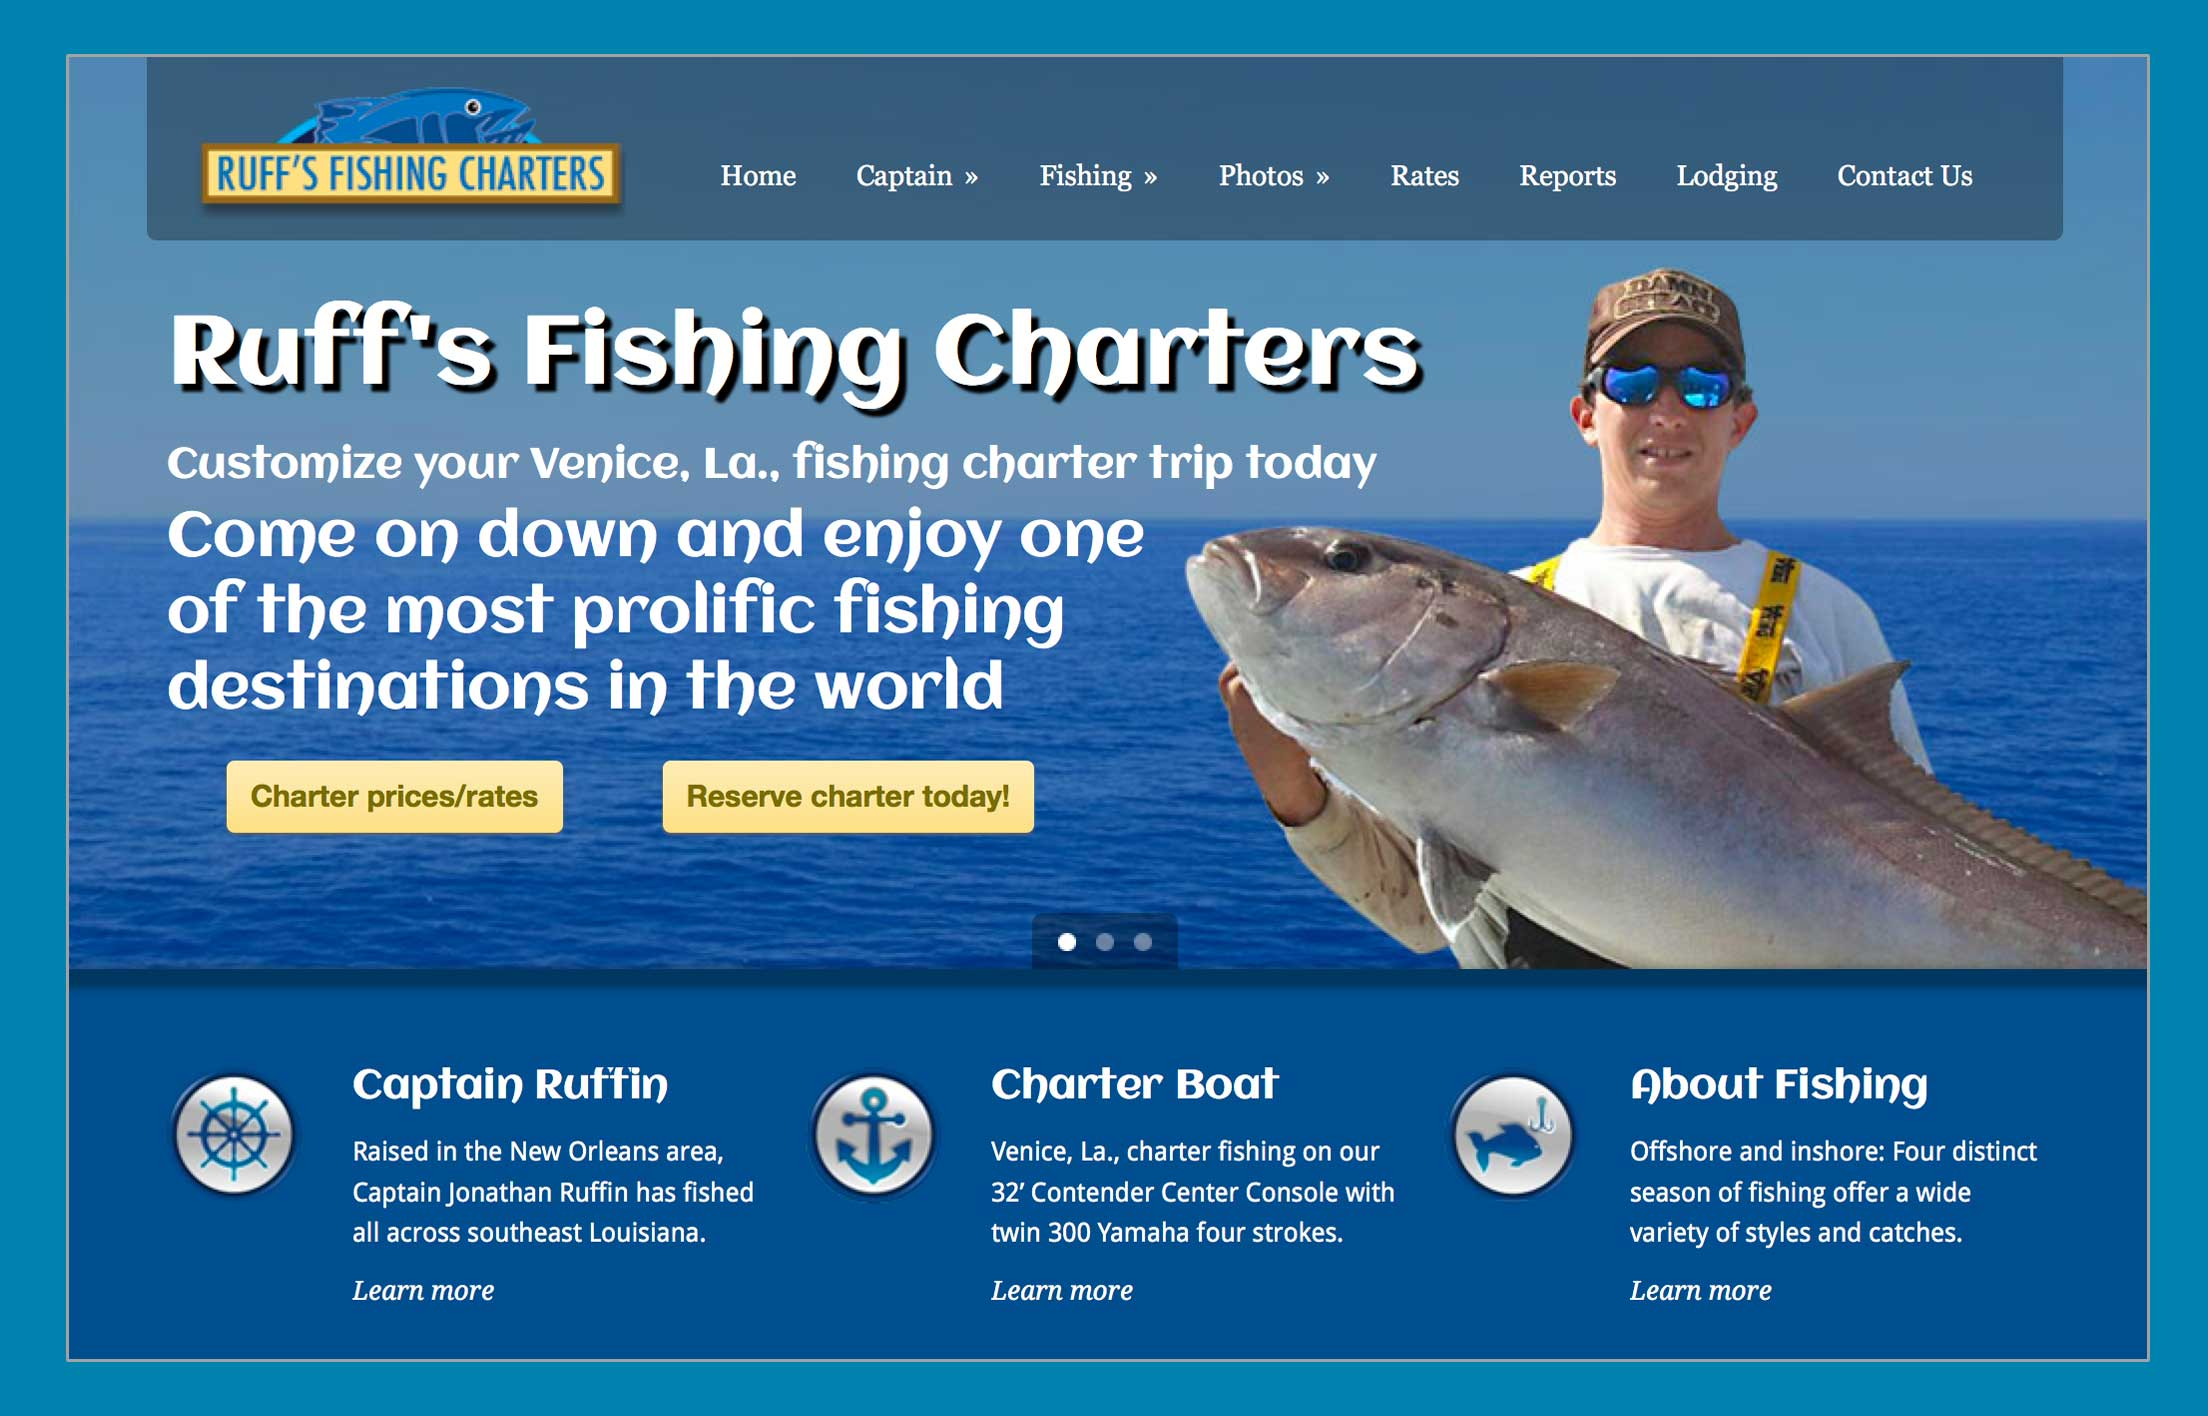 Ruff's Fishing Charters